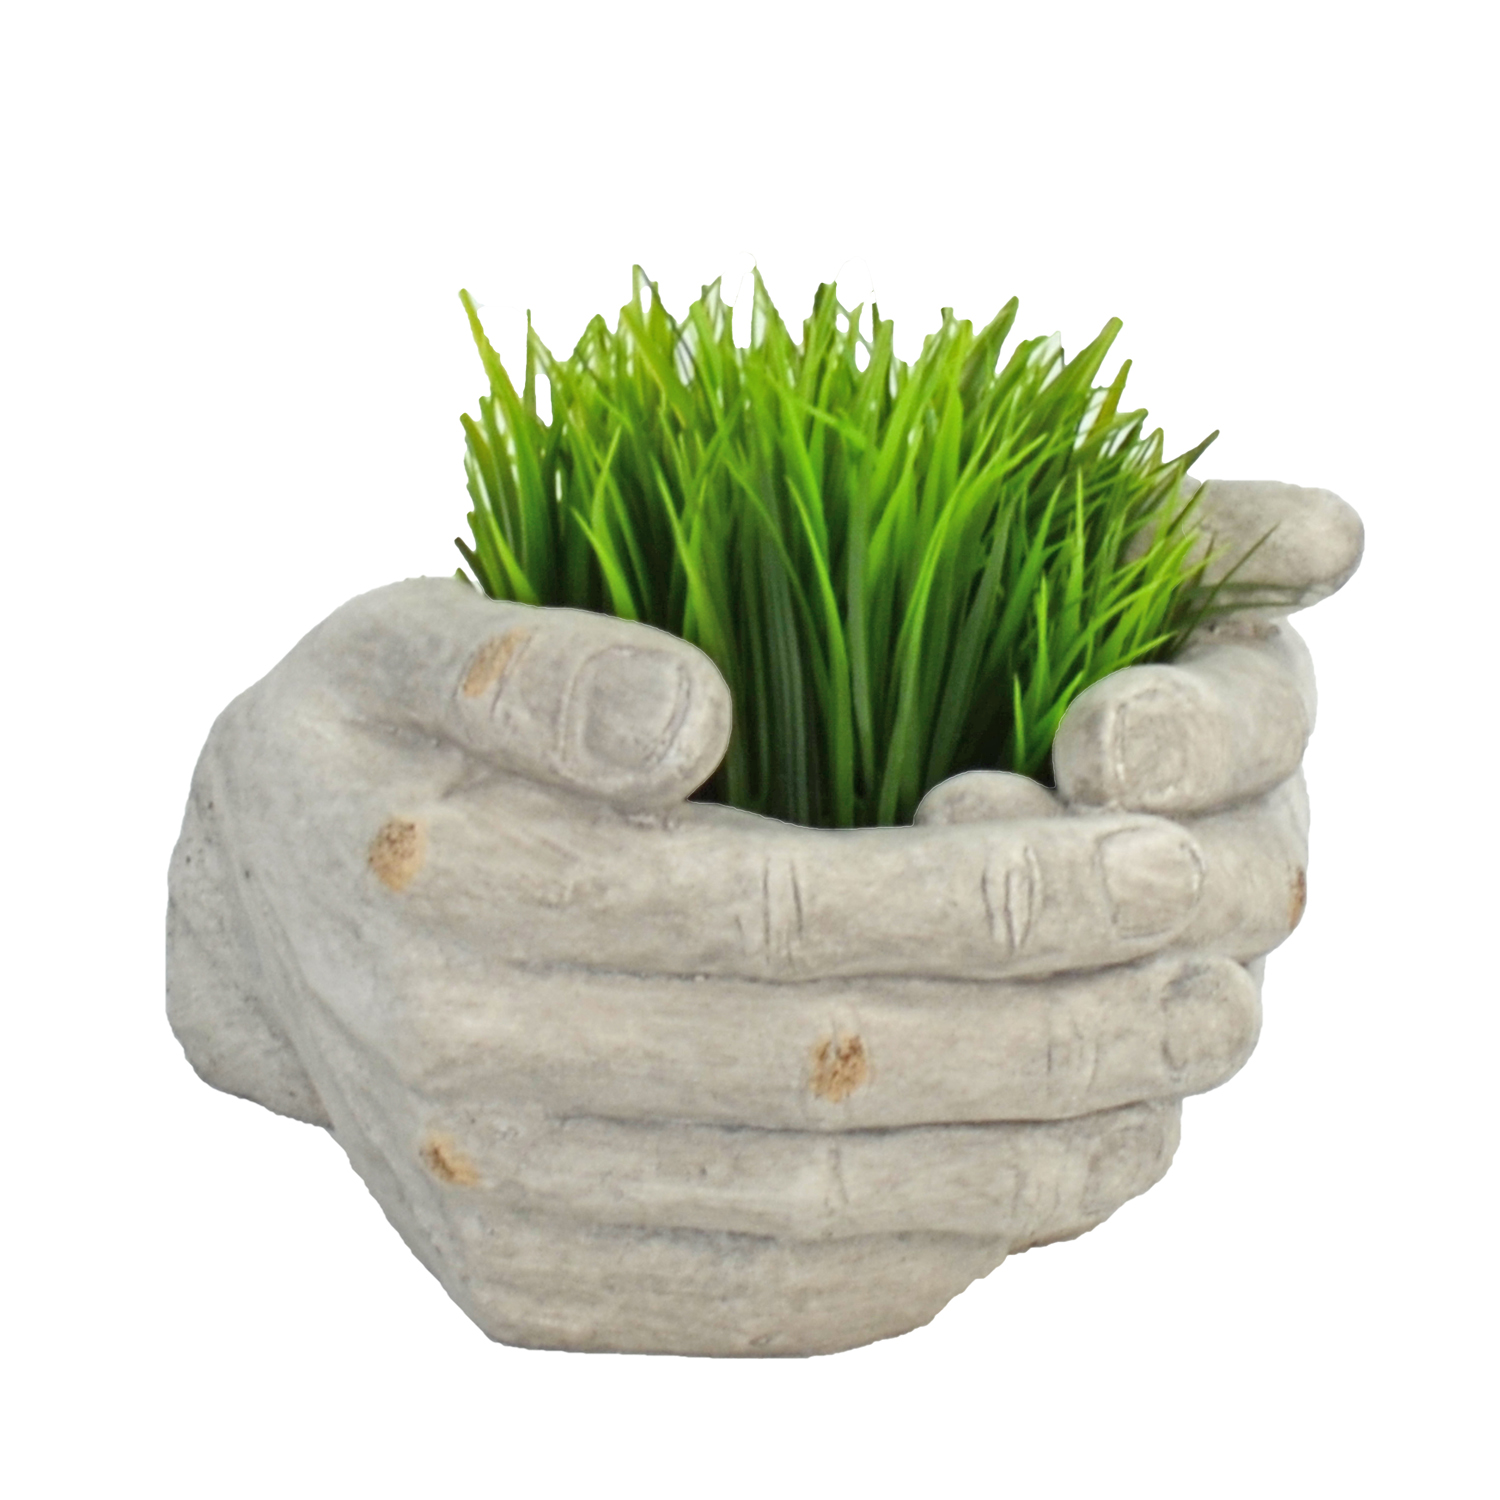 CUPPED HANDS PLANTER 19CM WEATHERED STONE EFFECT PROFILE WS12